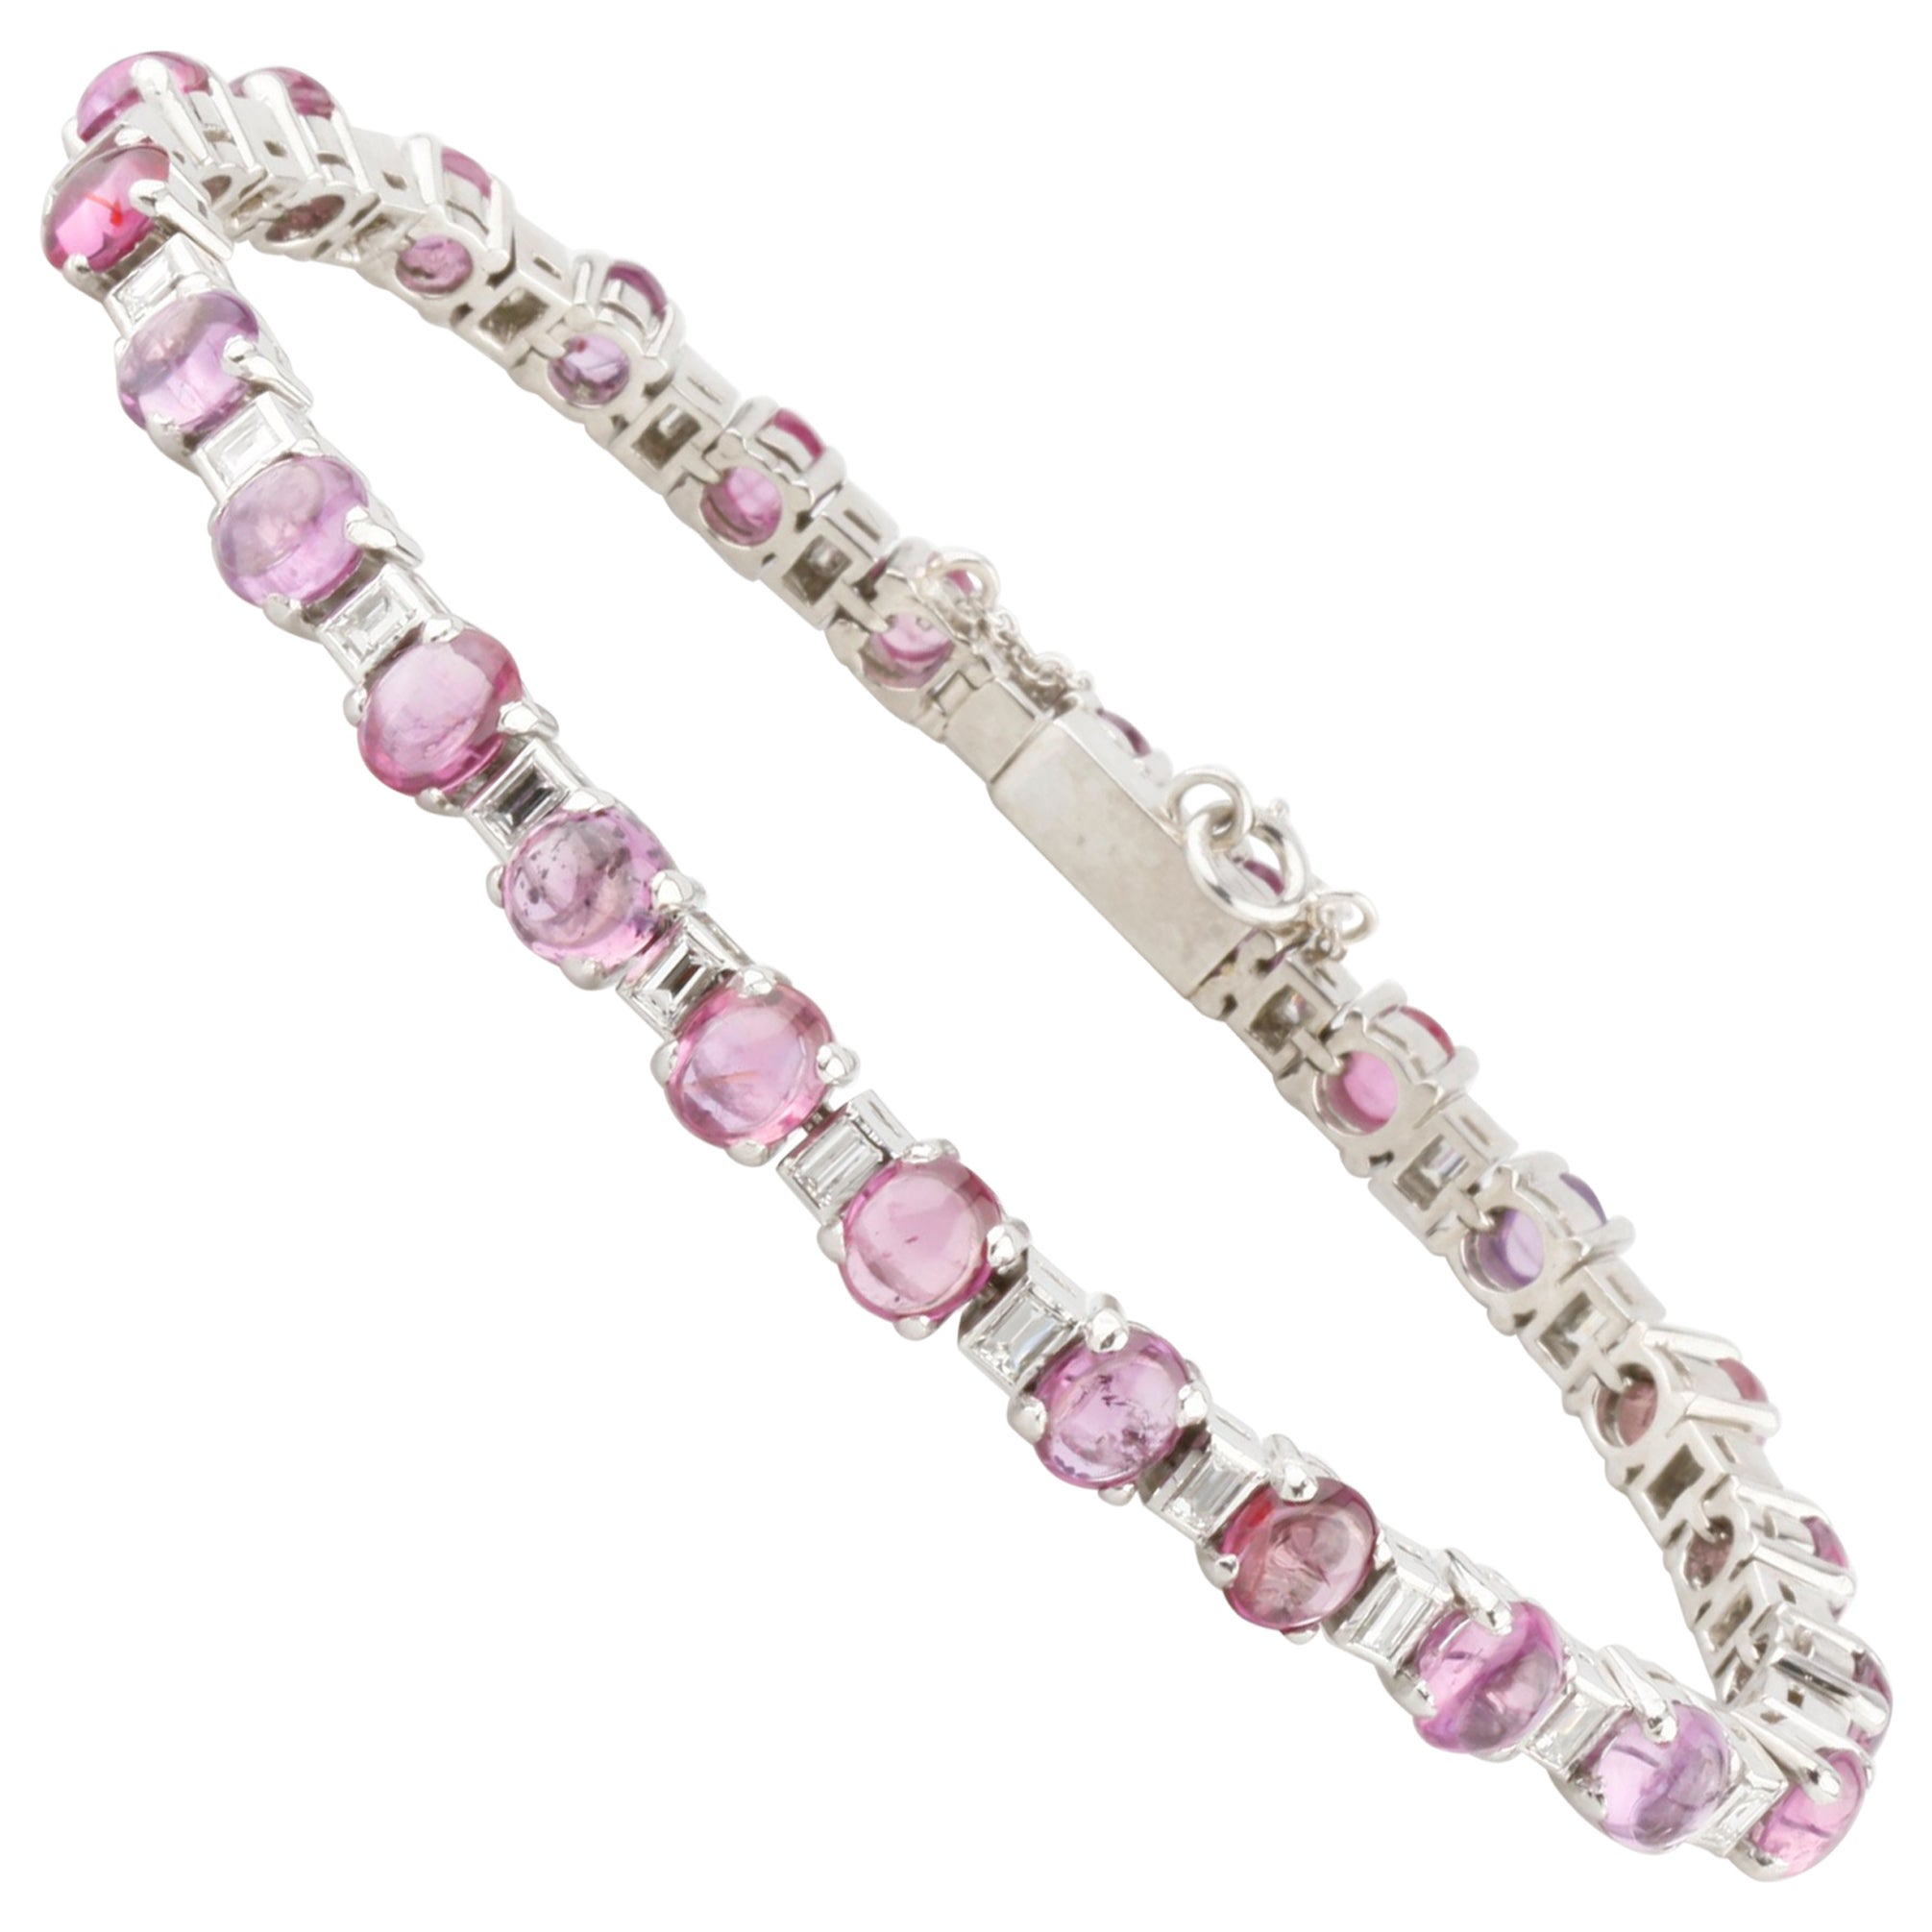 2.75 Carat Diamond and Ruby Cabochon Platinum Link Bracelet